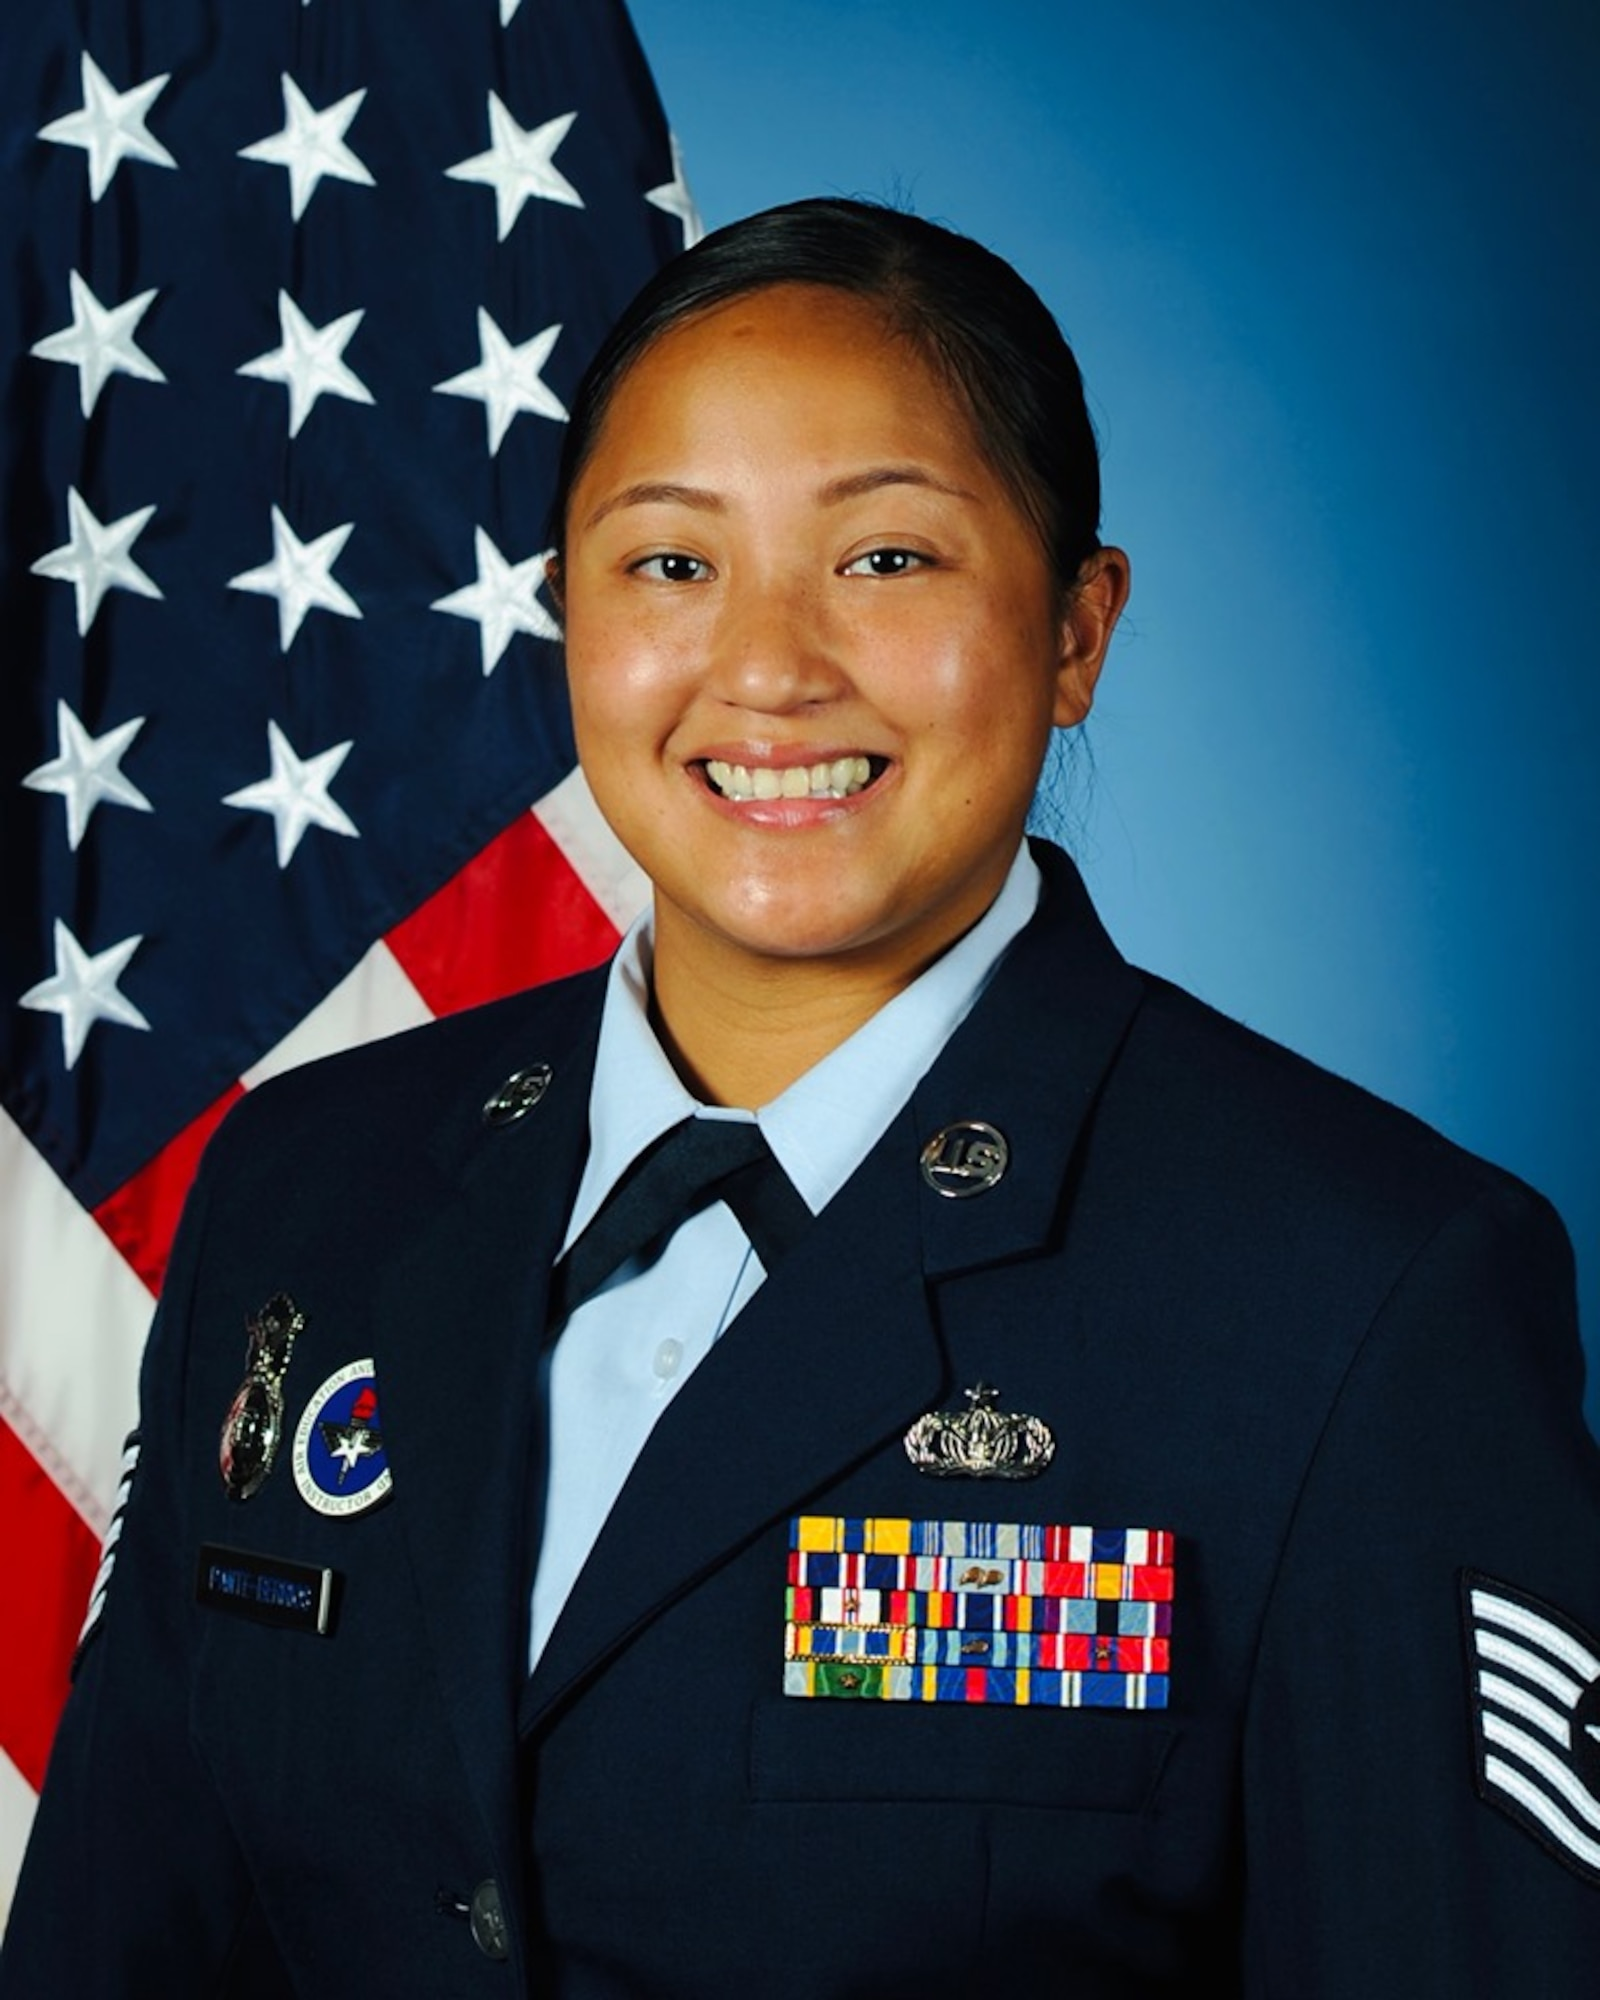 The Uniformed Services Award for the Federal Asian Pacific American Council was awarded to TSgt. Sarahlizamarie Pante-Berrios, April 8, 2020. The award recognizes members of all of the Uniformed Services for fostering harmonious relationships between the services and the Asian and Pacific Islander communities, exhibiting distinguished behavior, and being a leader in overcoming discrimination, promoting equal opportunity, and developing all members of the Civilian and Uniformed Services. (Courtesy Photo)